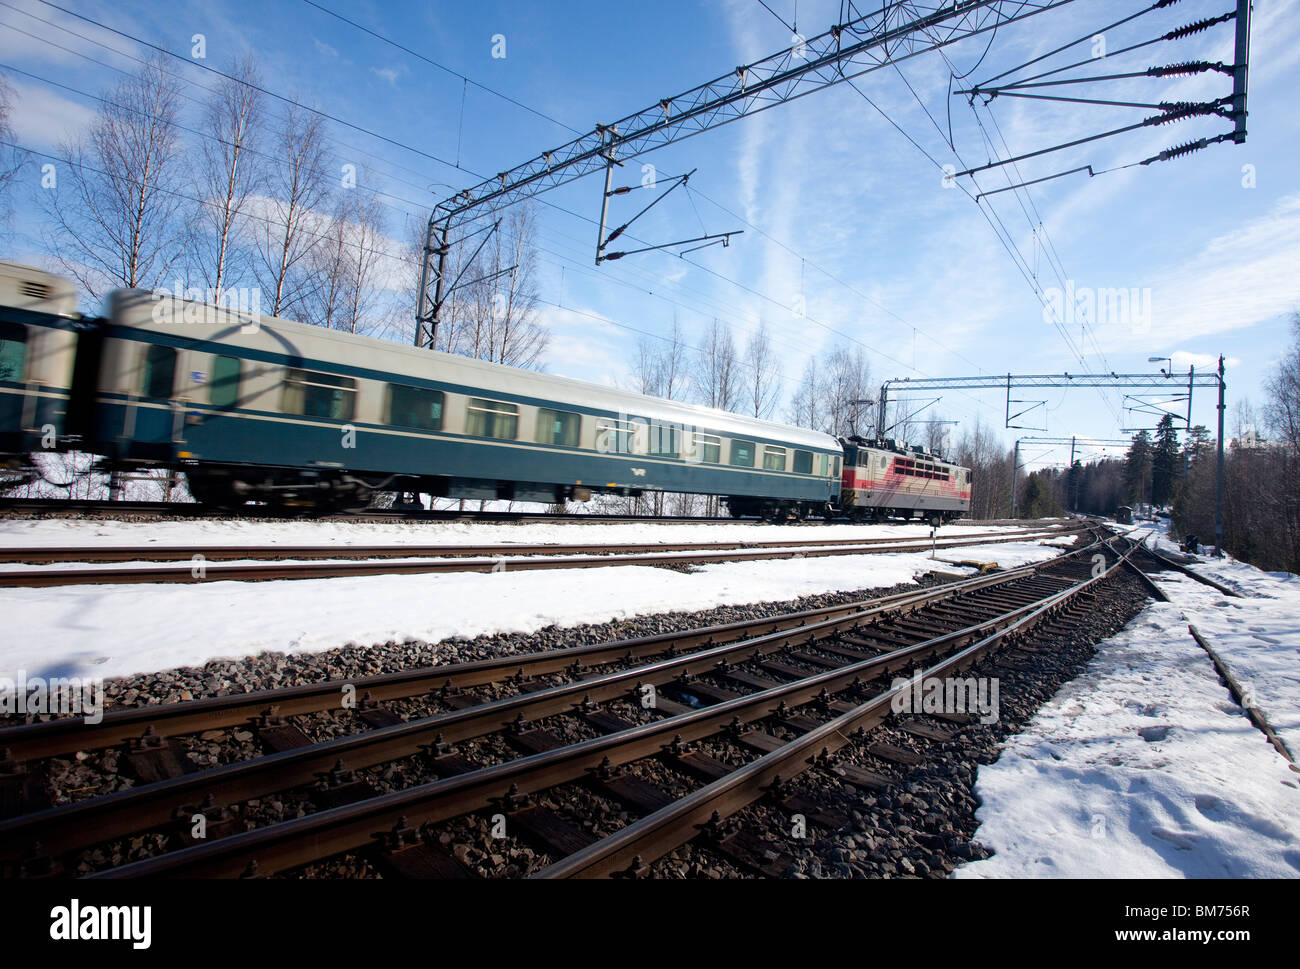 Finnish National Railroad company's (VR) passenger train using electric locomotive , Finland - Stock Image